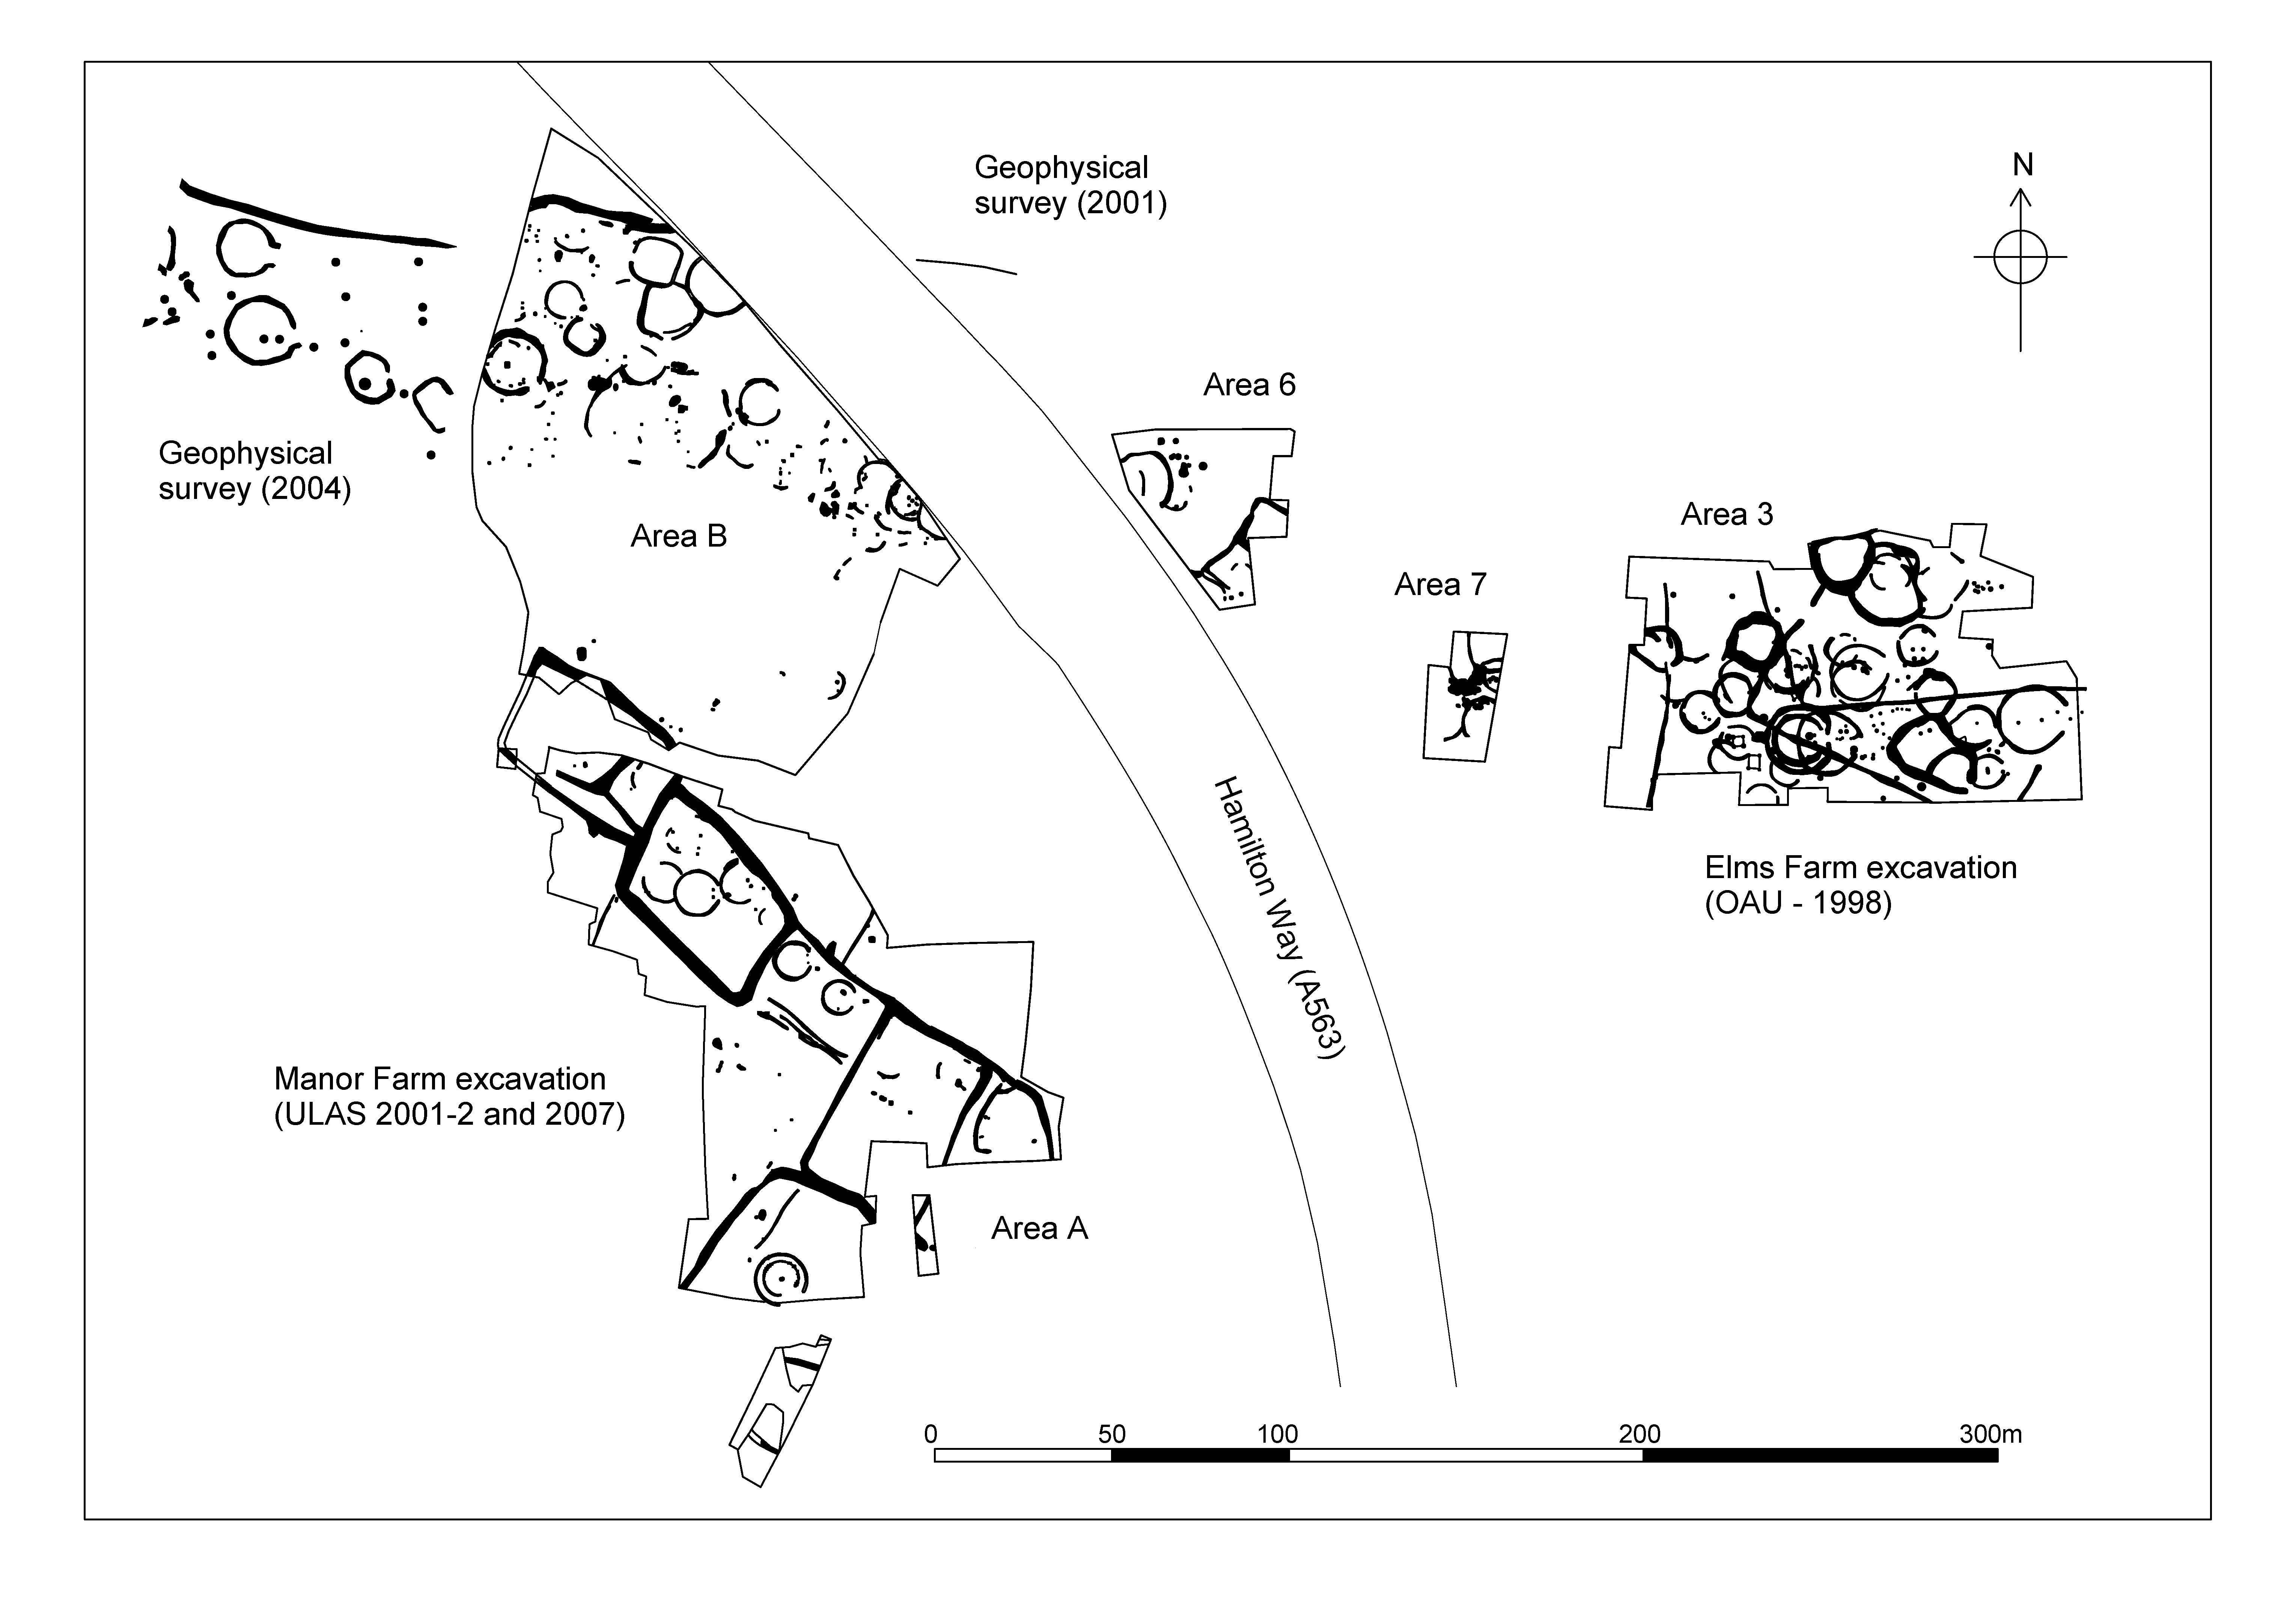 A diagram of a large site (circa 500 metres across), showing enclosures and other structures as they appear on a geophysical survey.